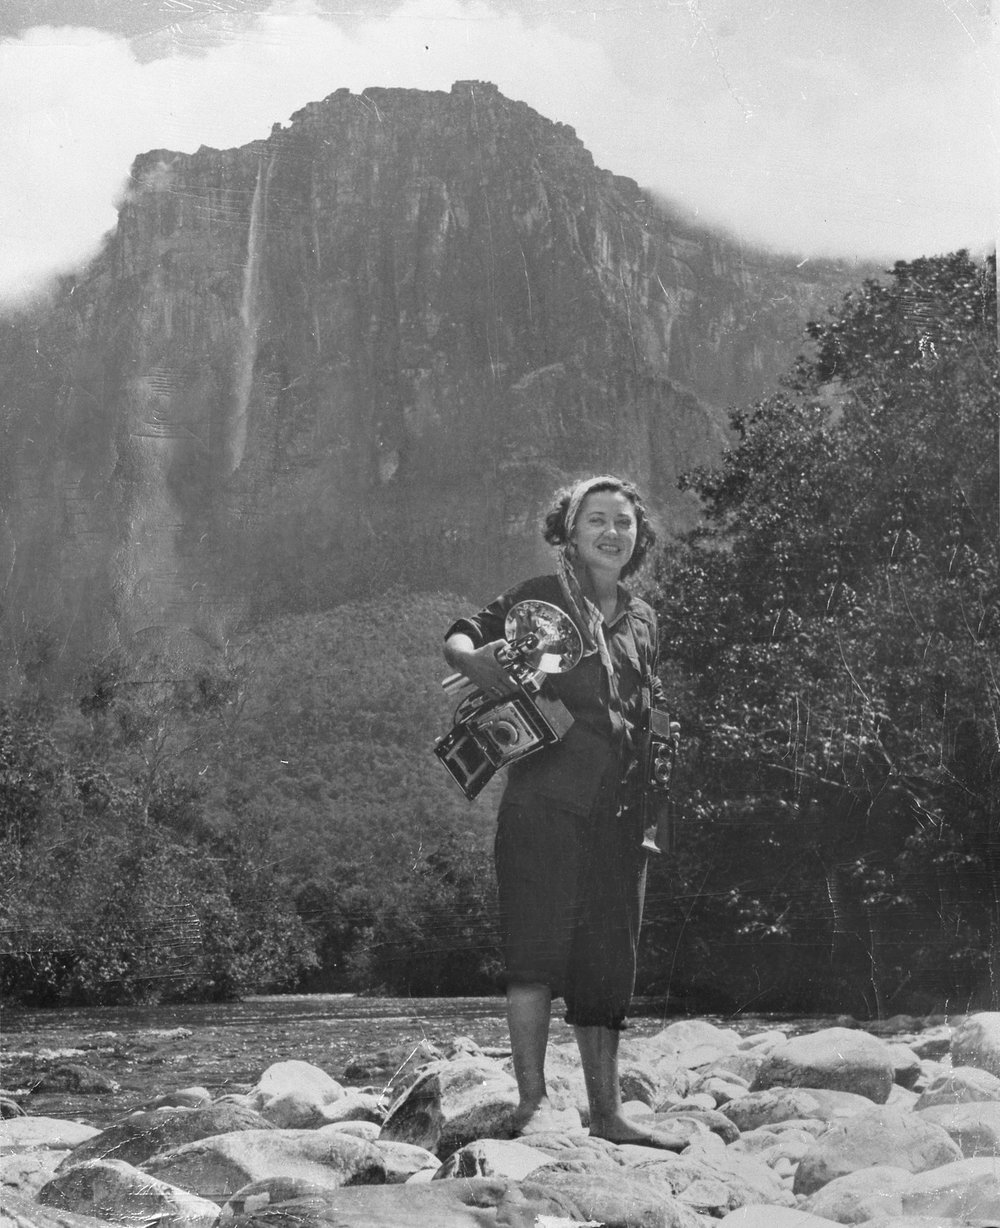 Self-portrait, Angel Falls 1949